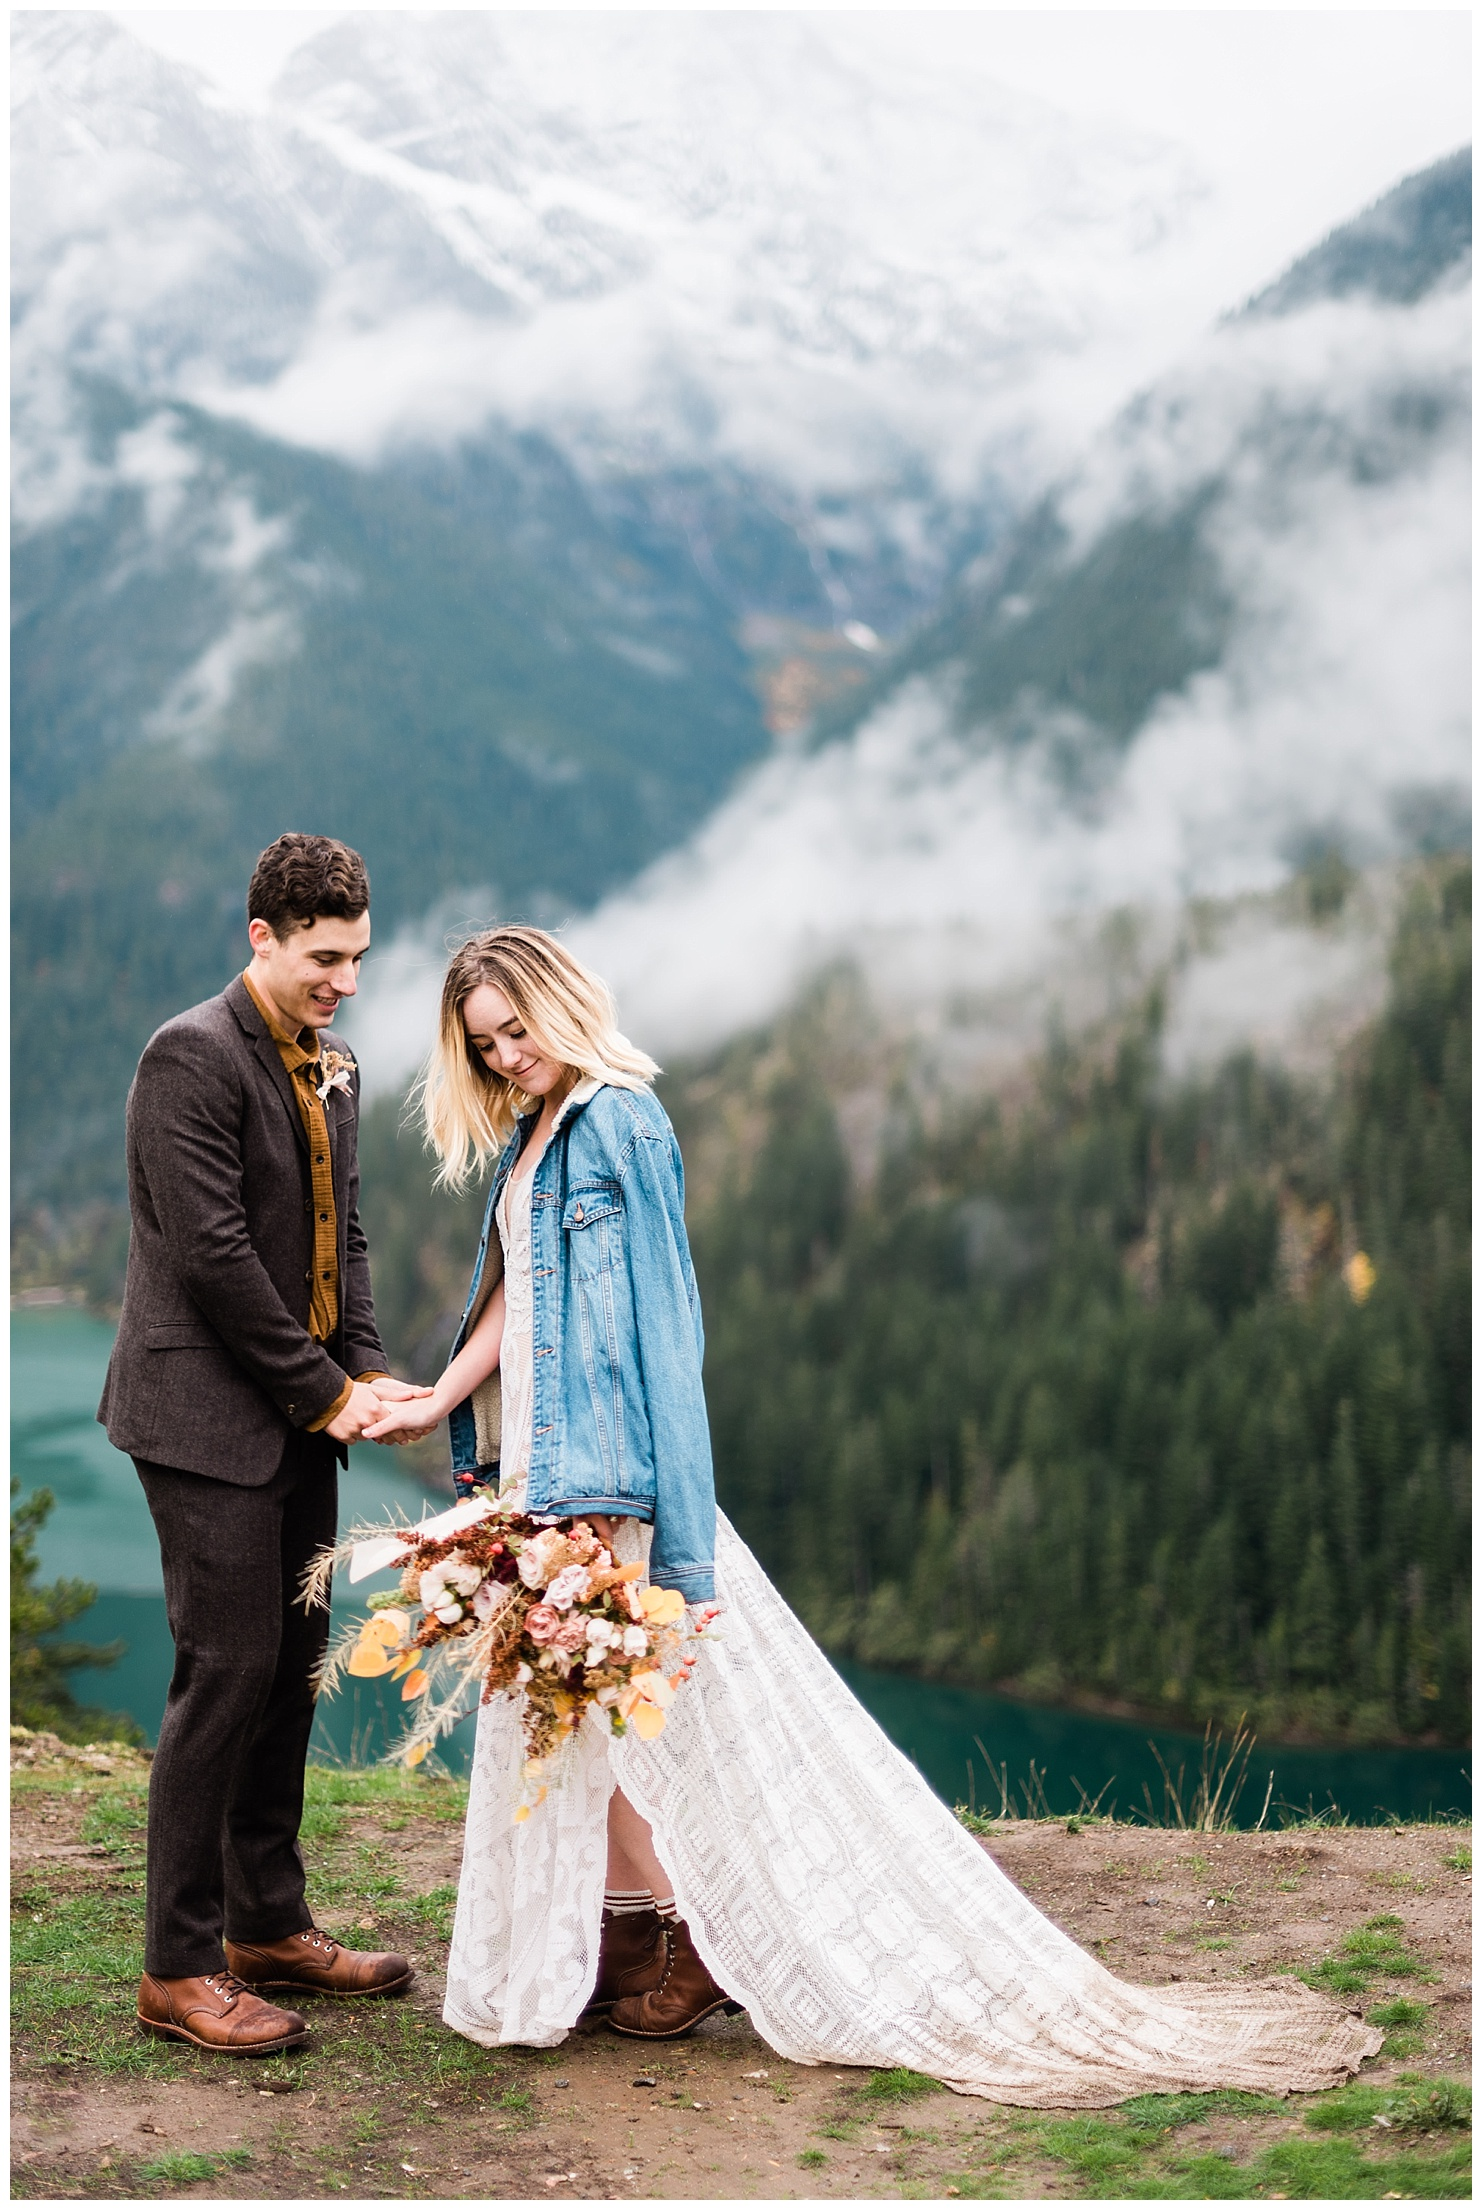 Diablo Lake, North Cascades Elopement by Forthright Photo, pnw elopement photographers